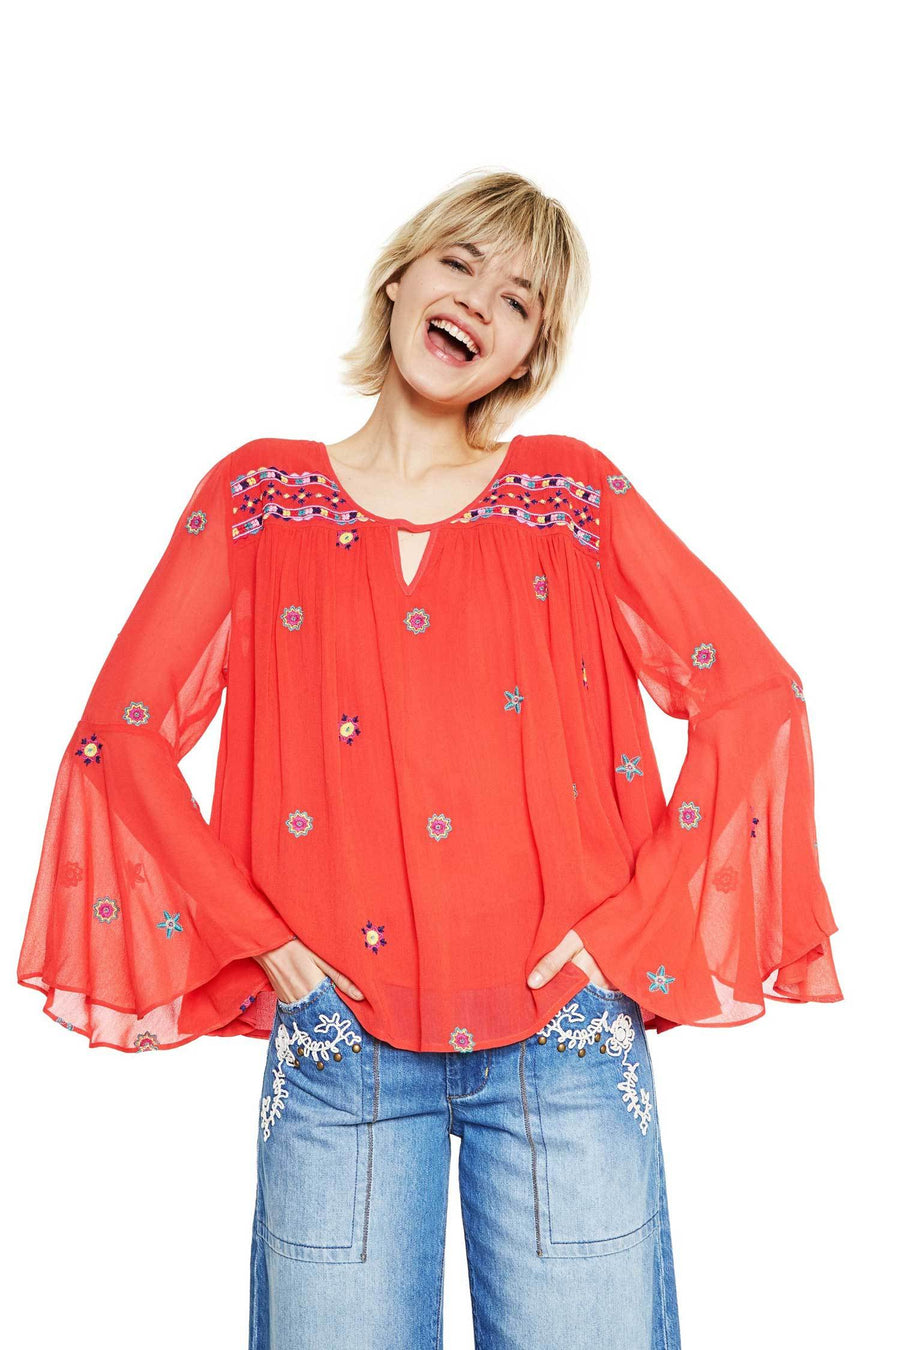 Shop Online Karissa Top by Desigual  Frockaholics Tops